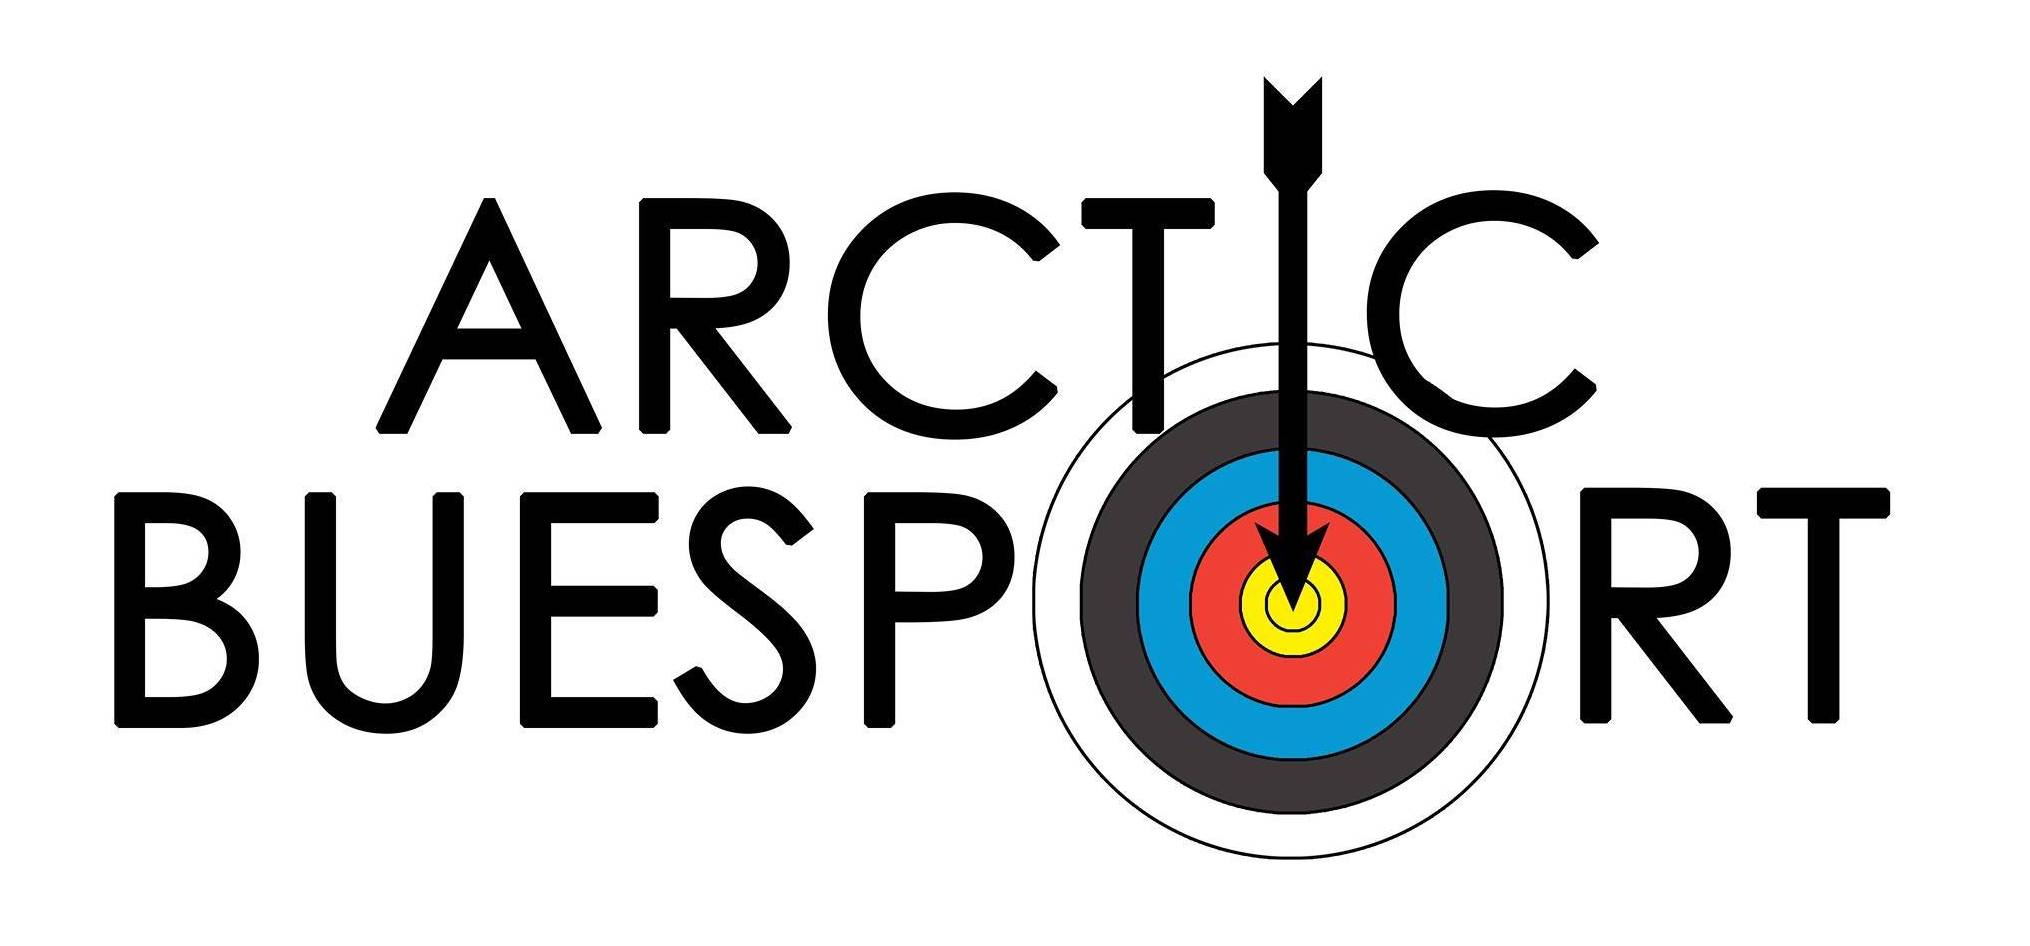 logo arcticbuesport as